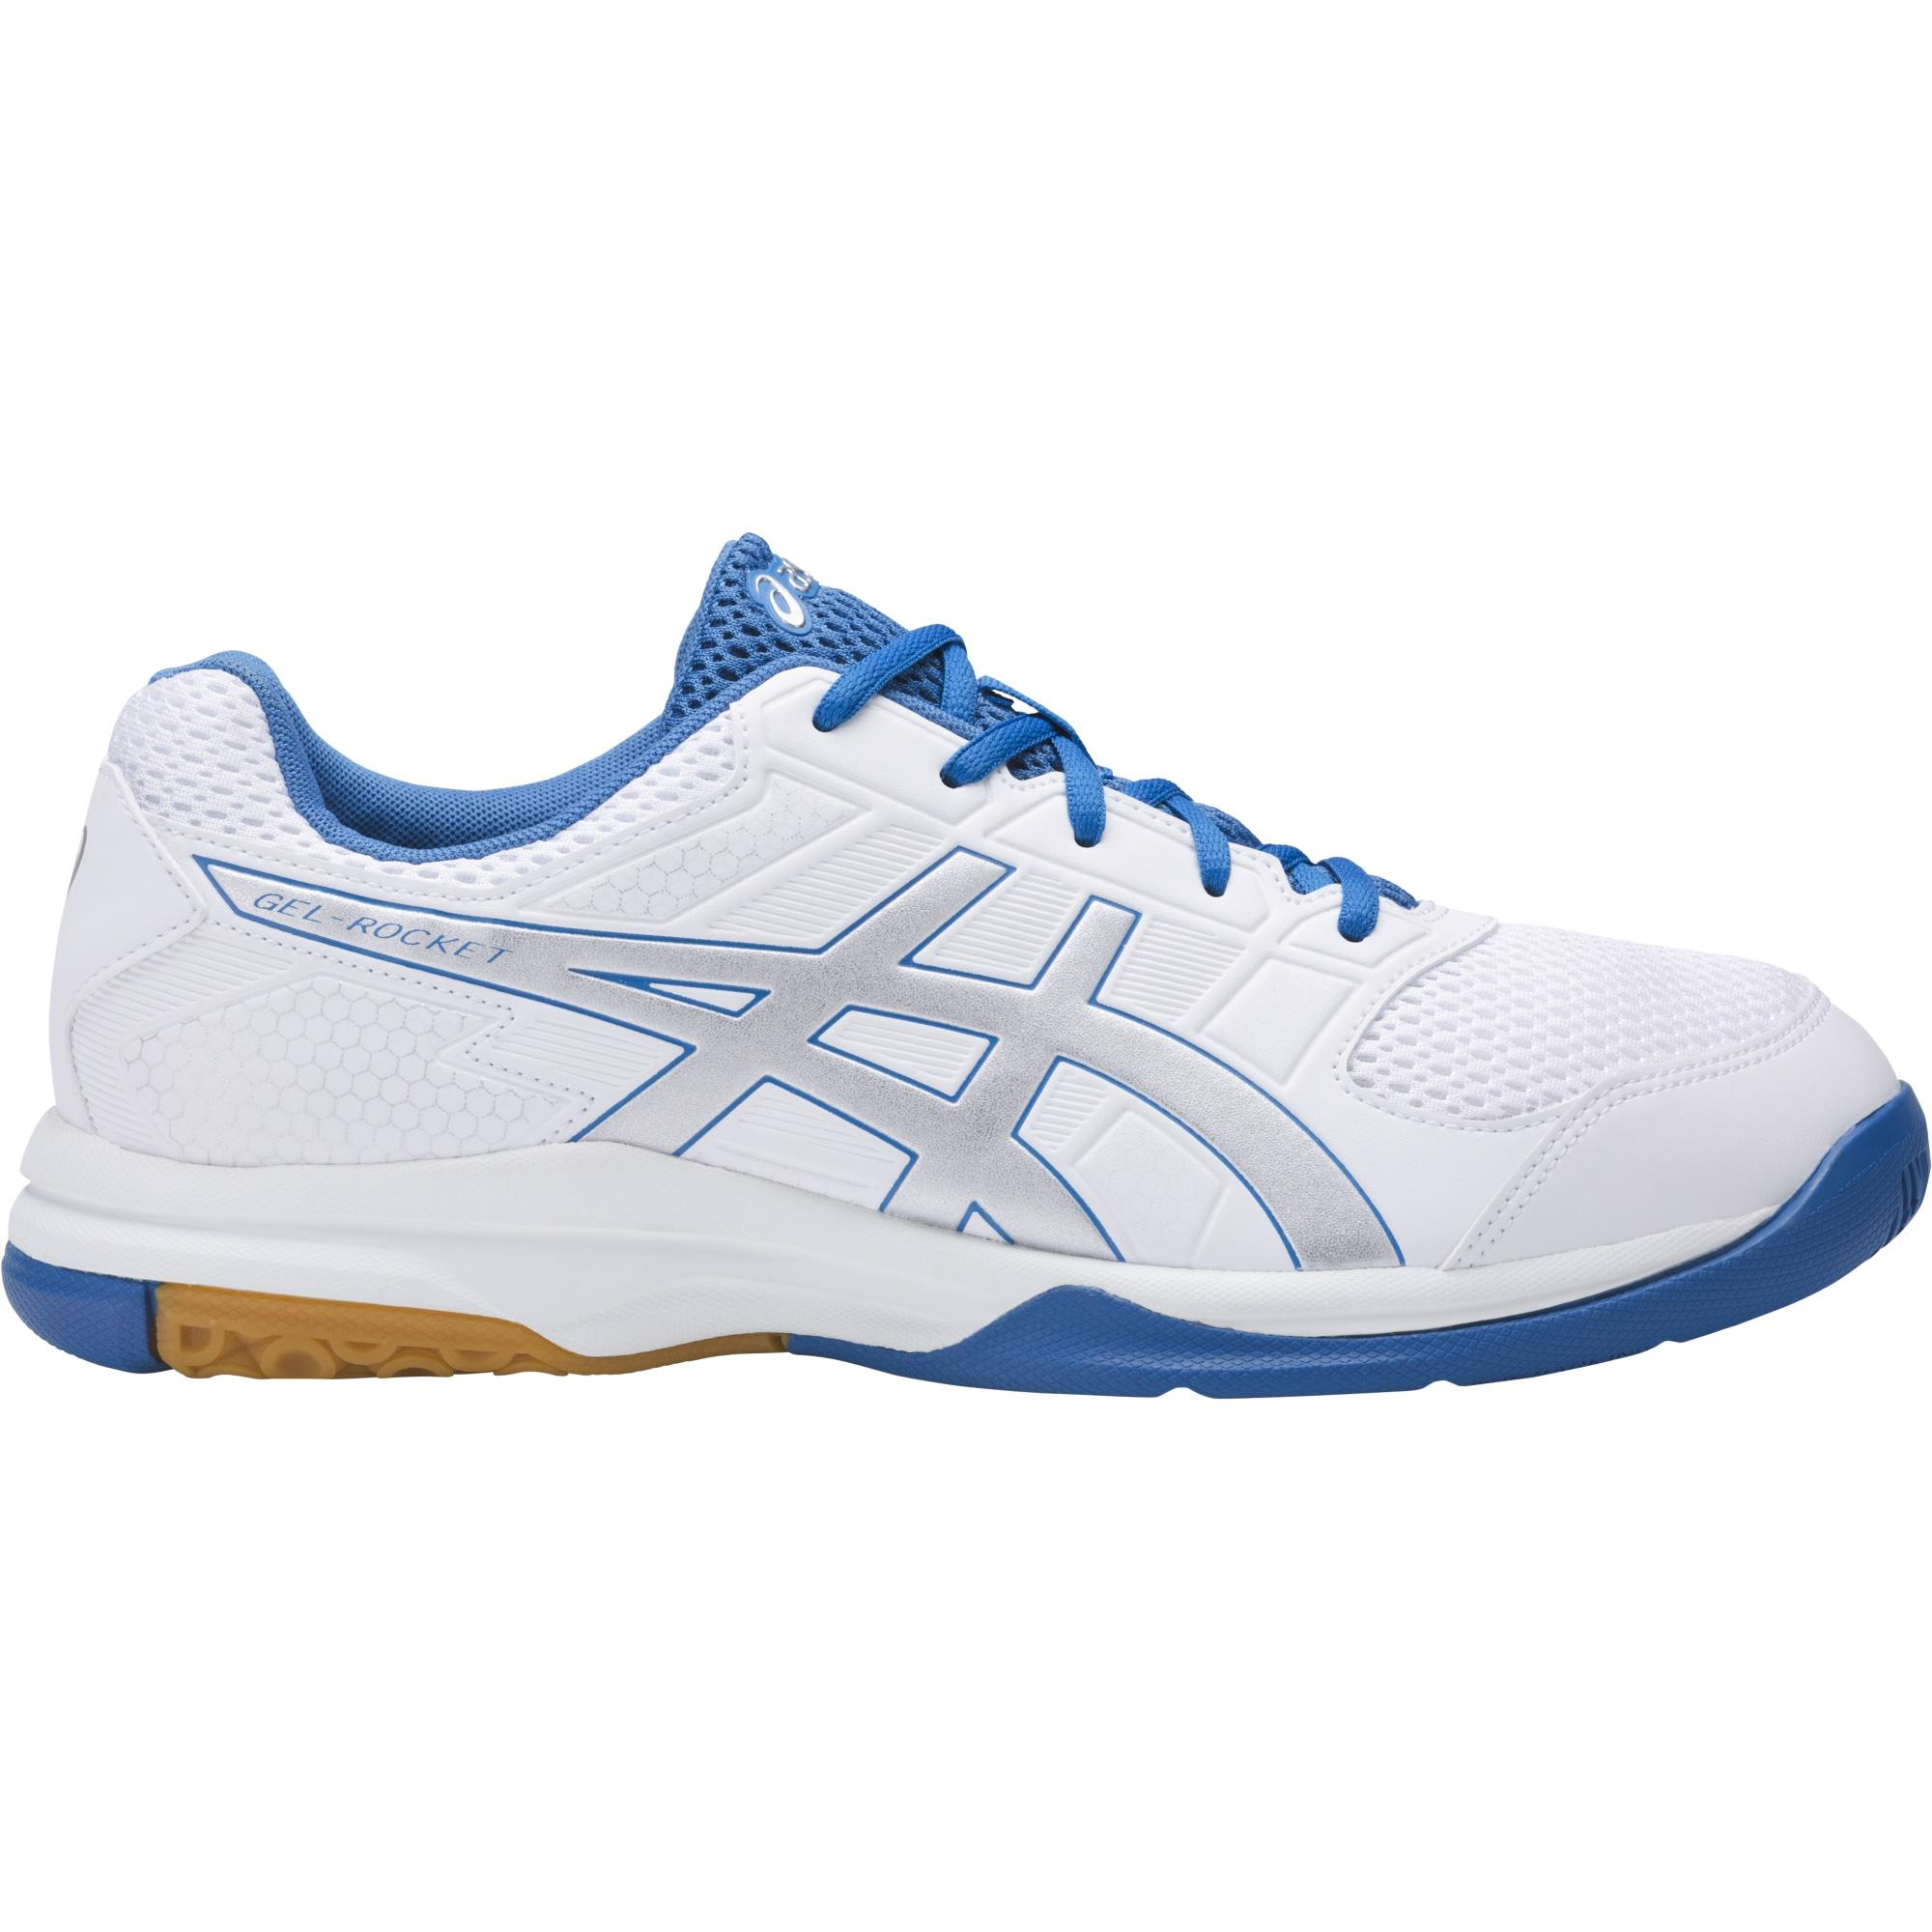 f00f0f1f198d Asics Mens GEL-Rocket 8 Indoor Court Shoes - White Blue - Tennisnuts.com